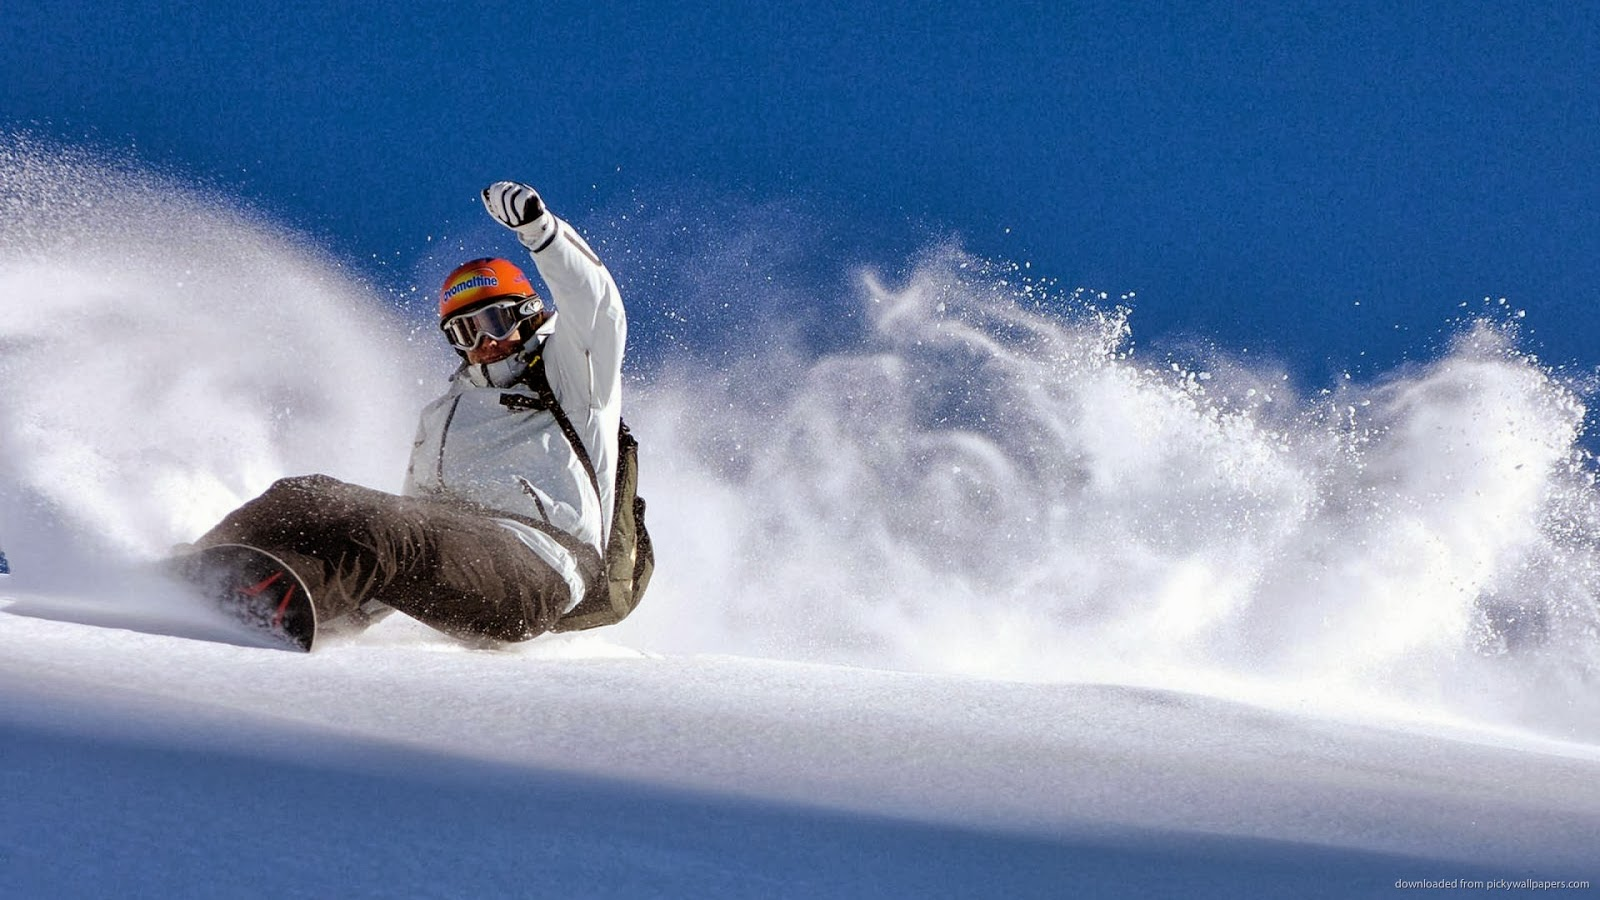 Snowboard Addict: How to choose a snowboard